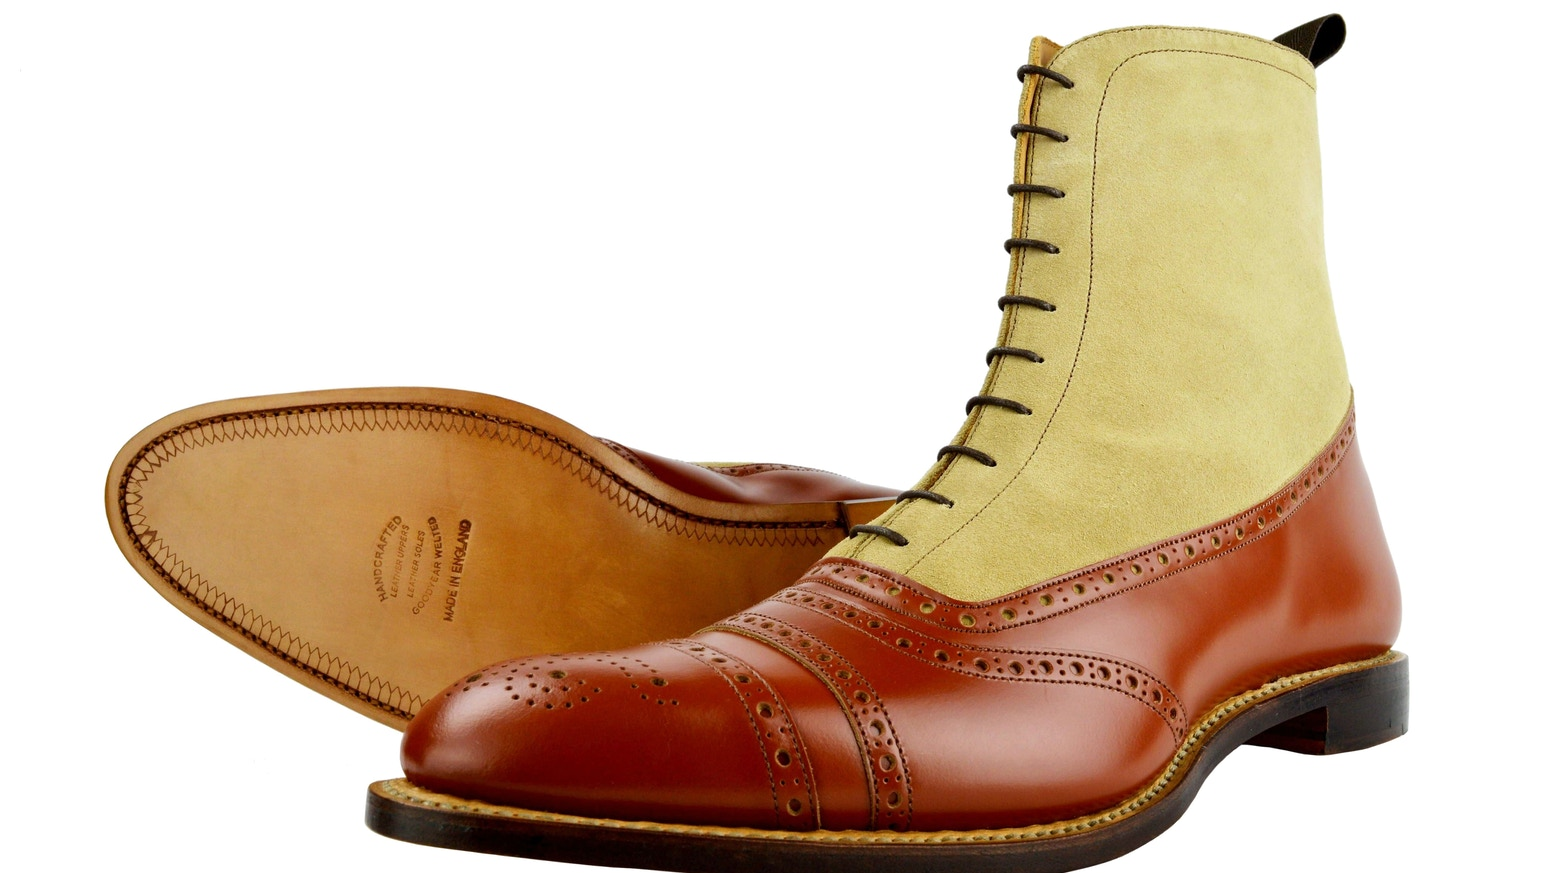 Sjc Classic Footwear By Simon James Cathcart Kickstarter Cut Engineer Shoes Iron Safety Boots Leather Dark Brown